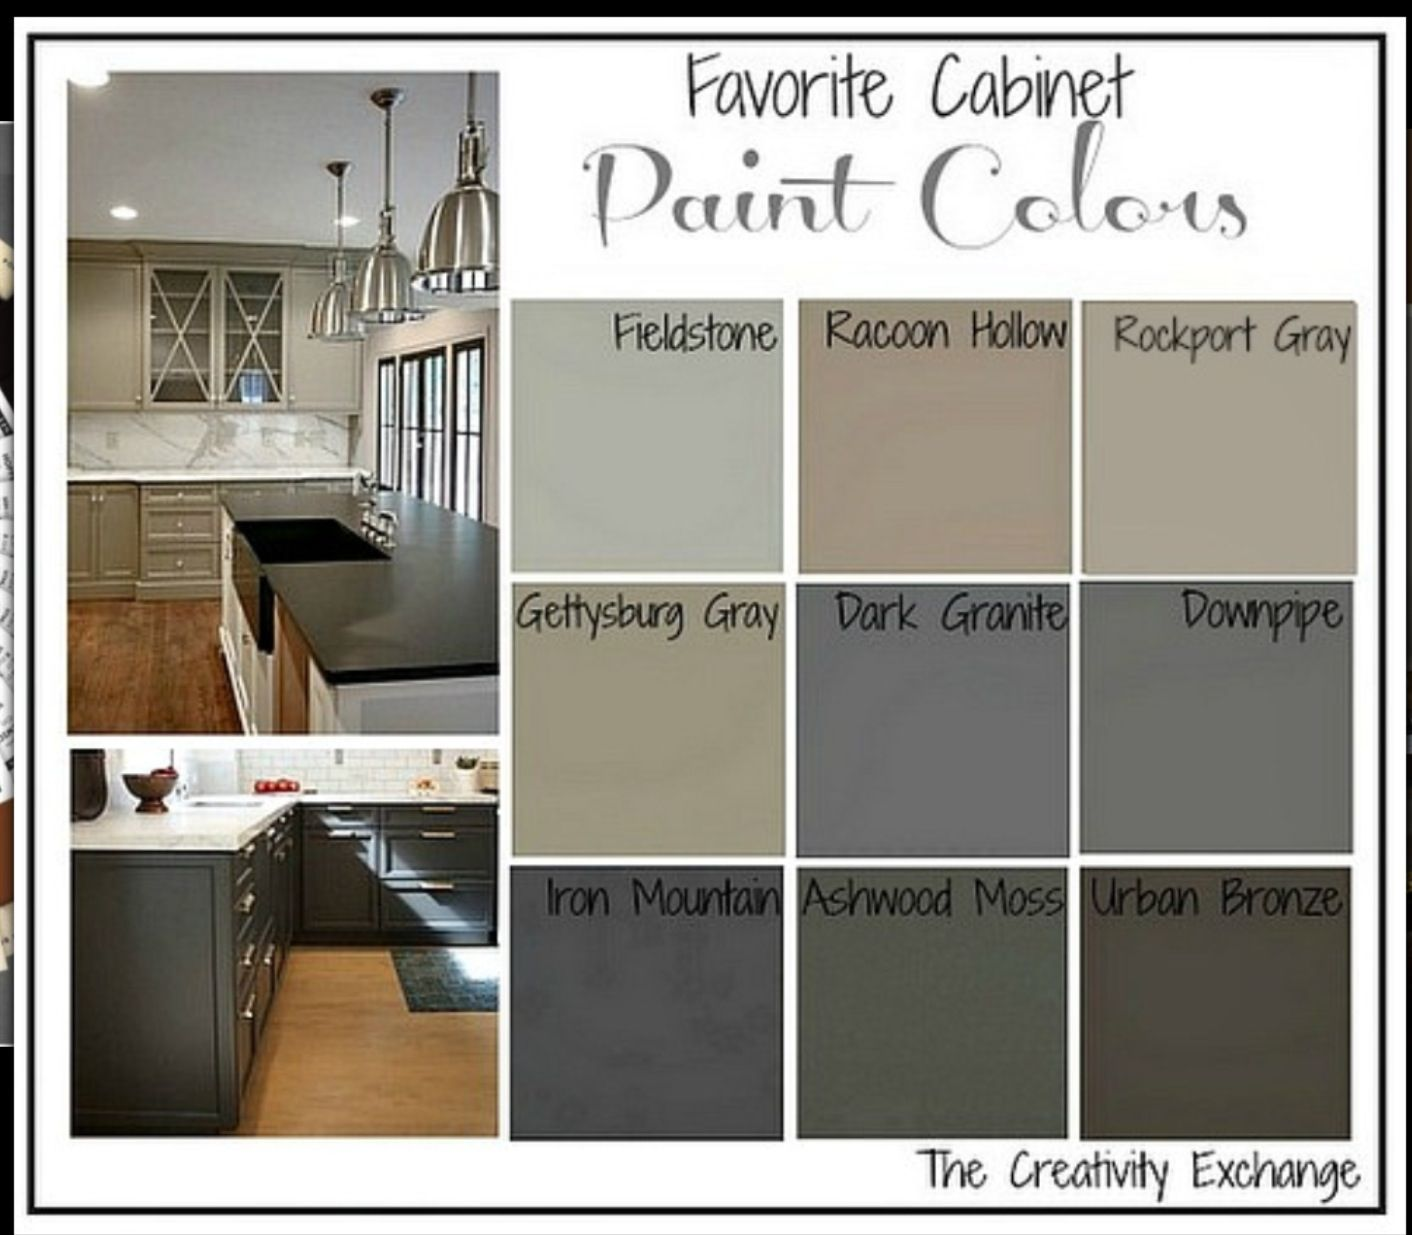 Gettysburg gray kitchen cabinets - Today On My Blog I Shared Nine Of My Favorite Kitchen Cabinet Paint Colors Choosing Paint Colors For Cabinets In The Kitchen Can Be Agonizing And I Hope